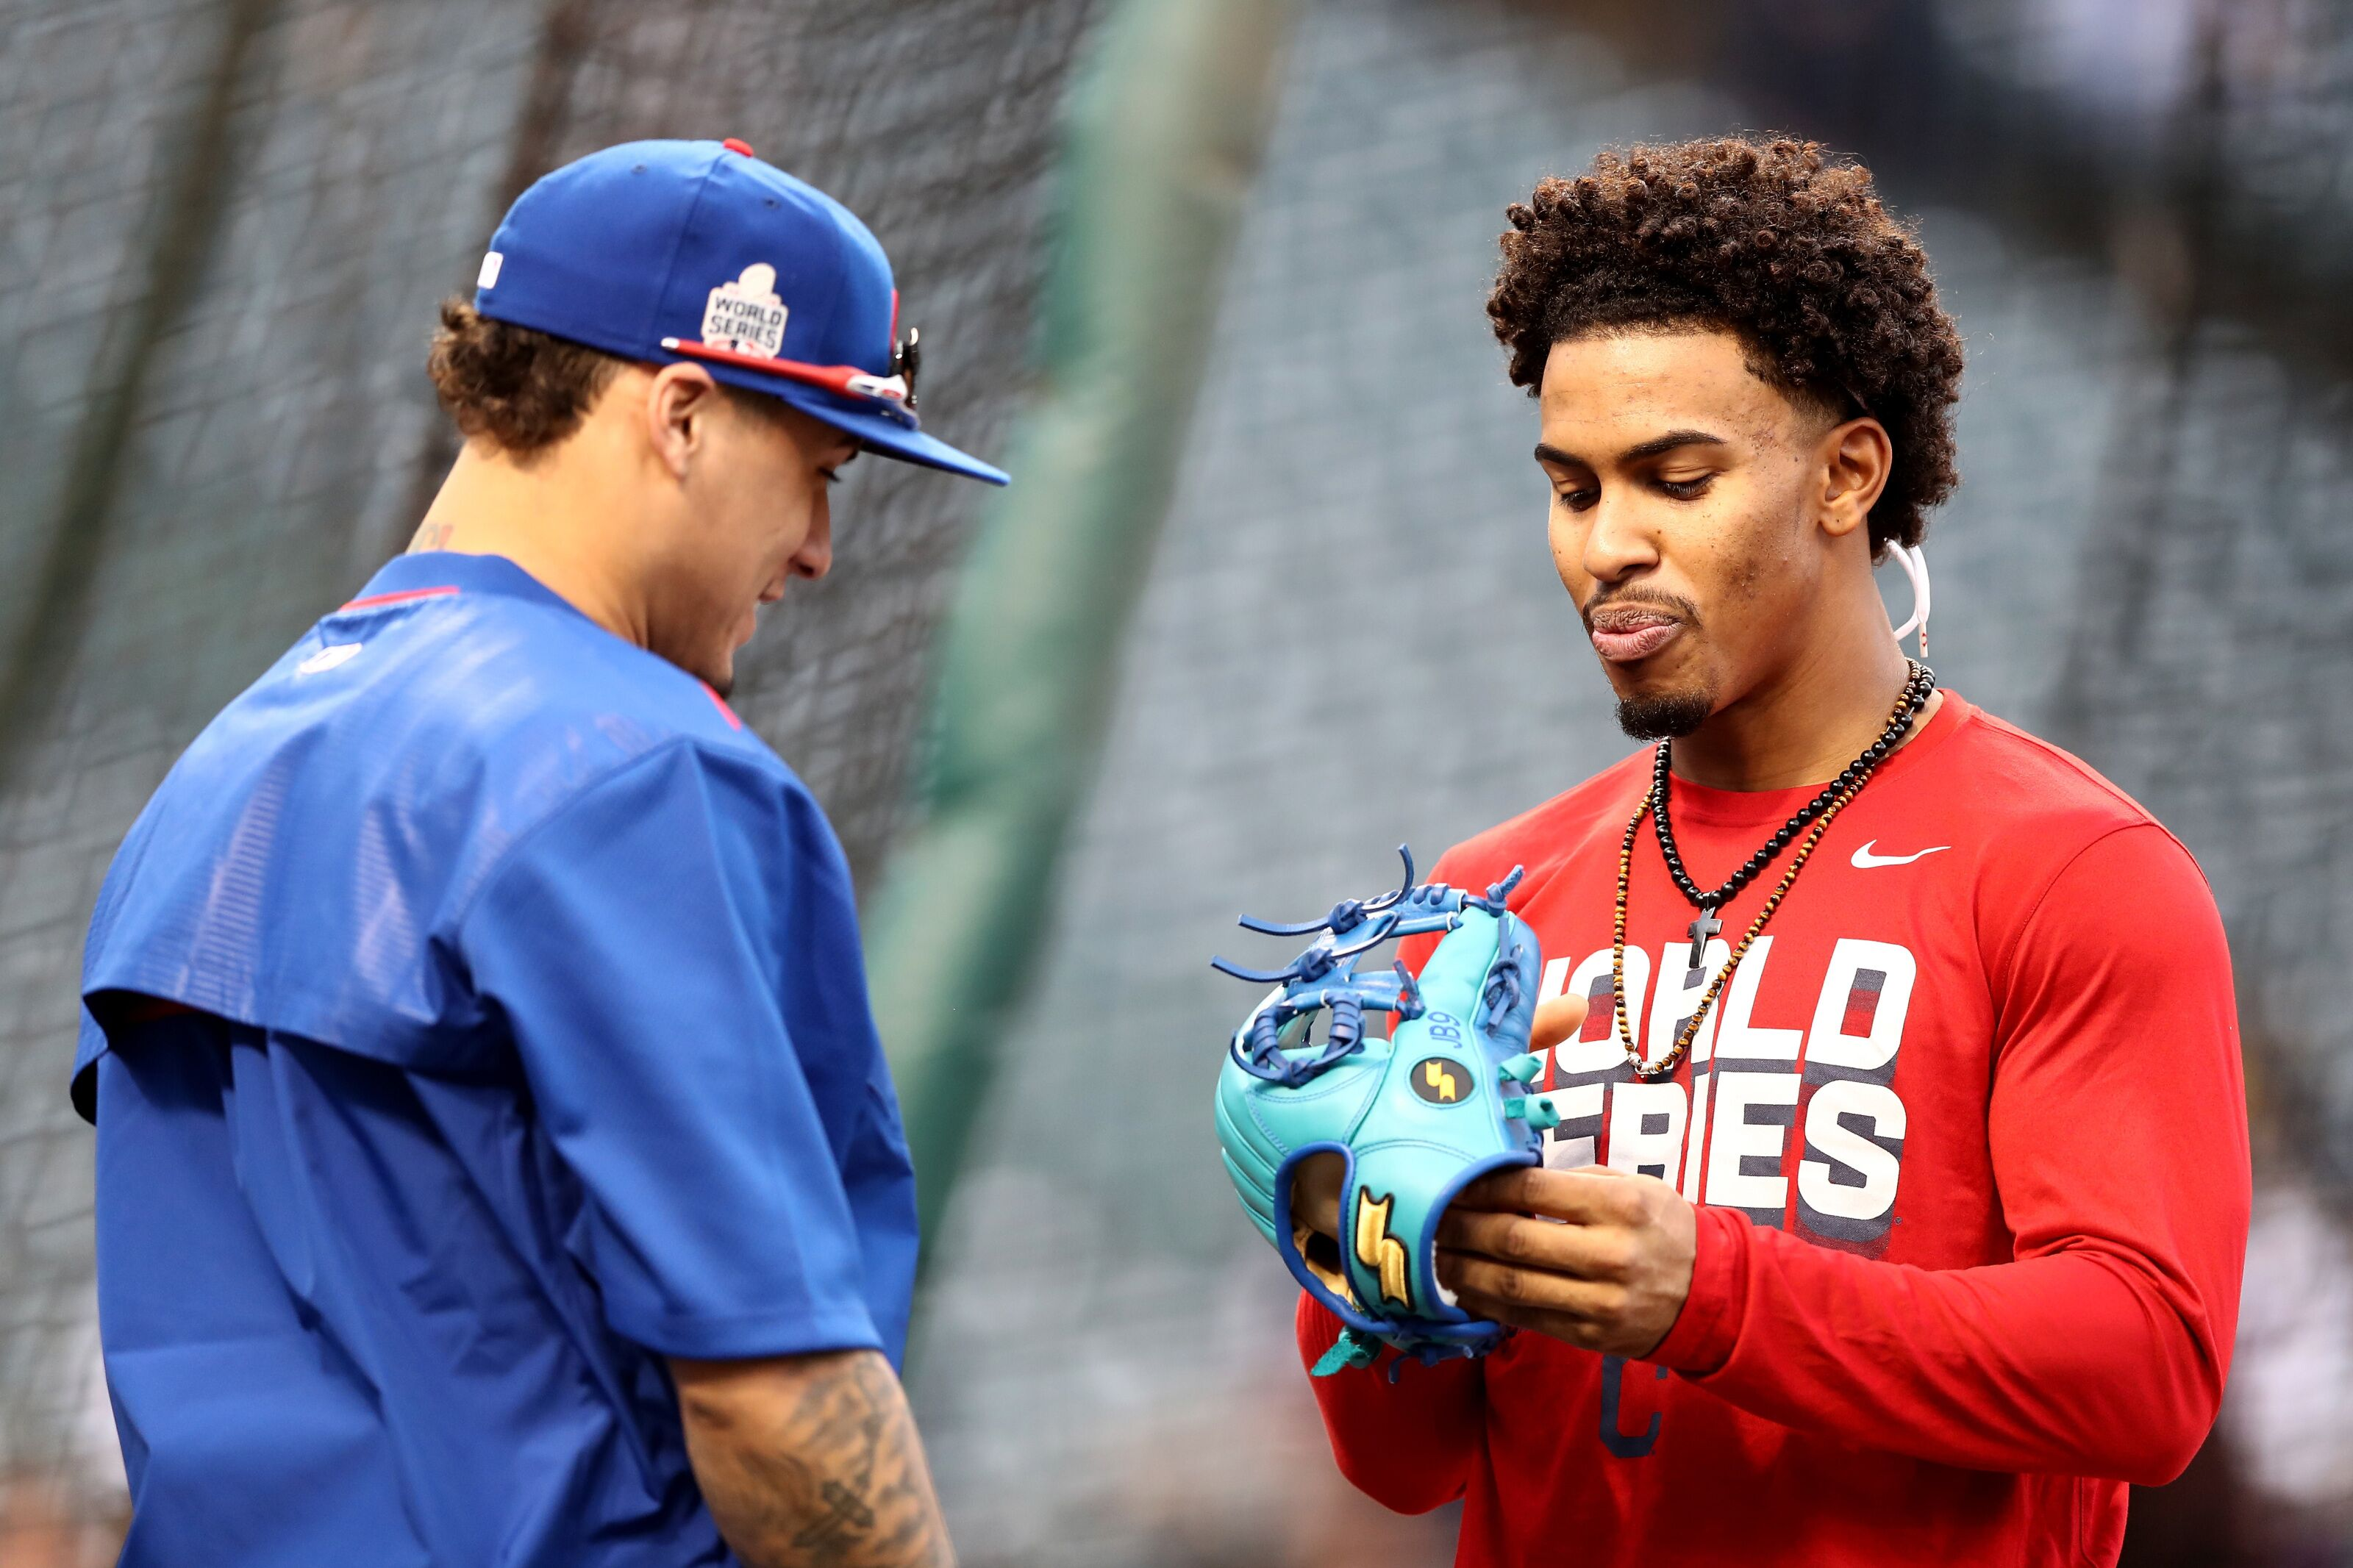 Chicago Cubs looking to keep Javier Baez and his swagger in town